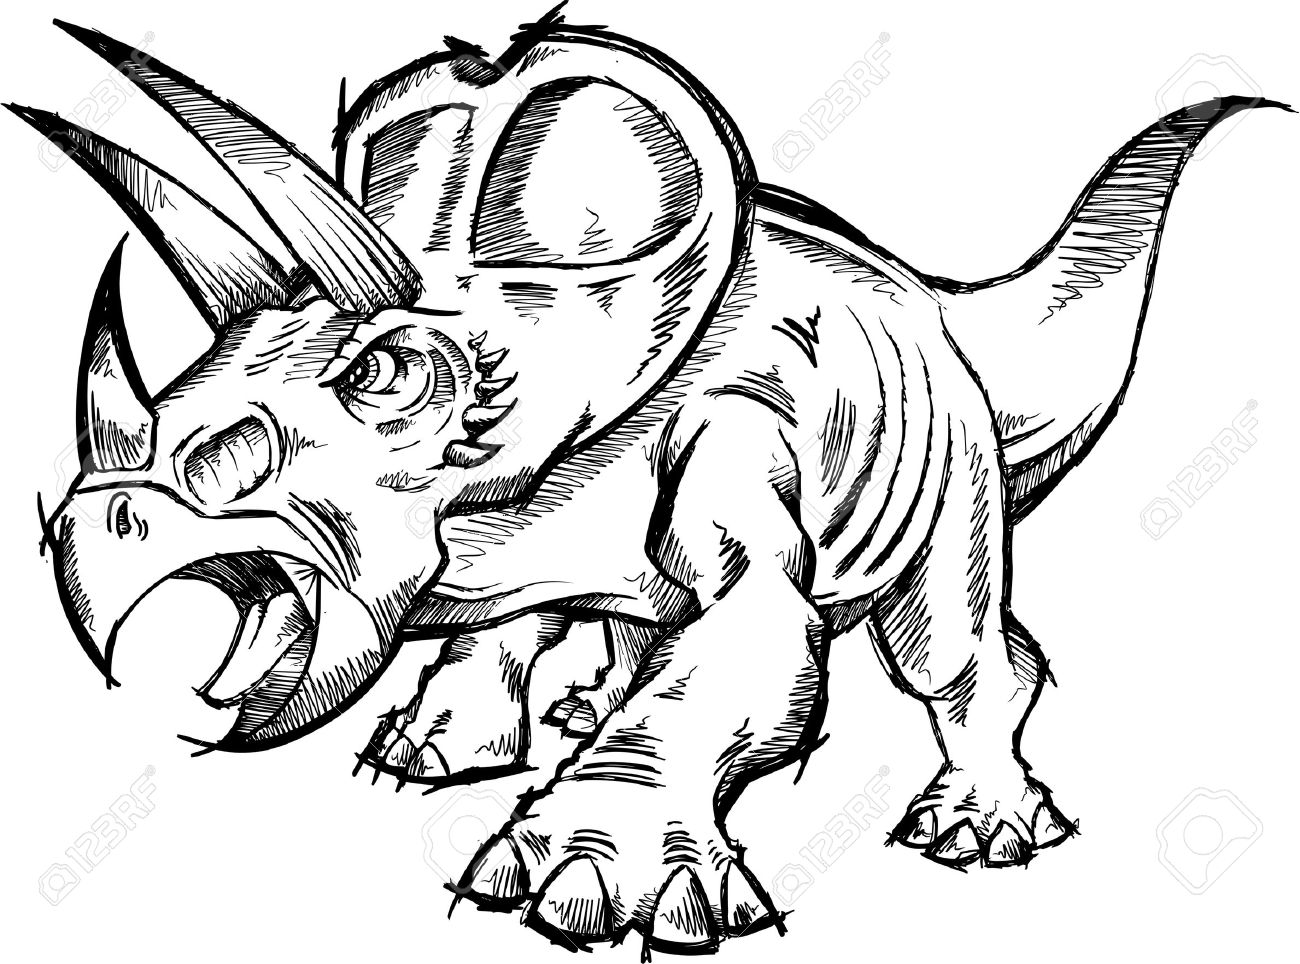 1300x964 Triceratops Dinosaur Sketch Doodle Royalty Free Cliparts, Vectors